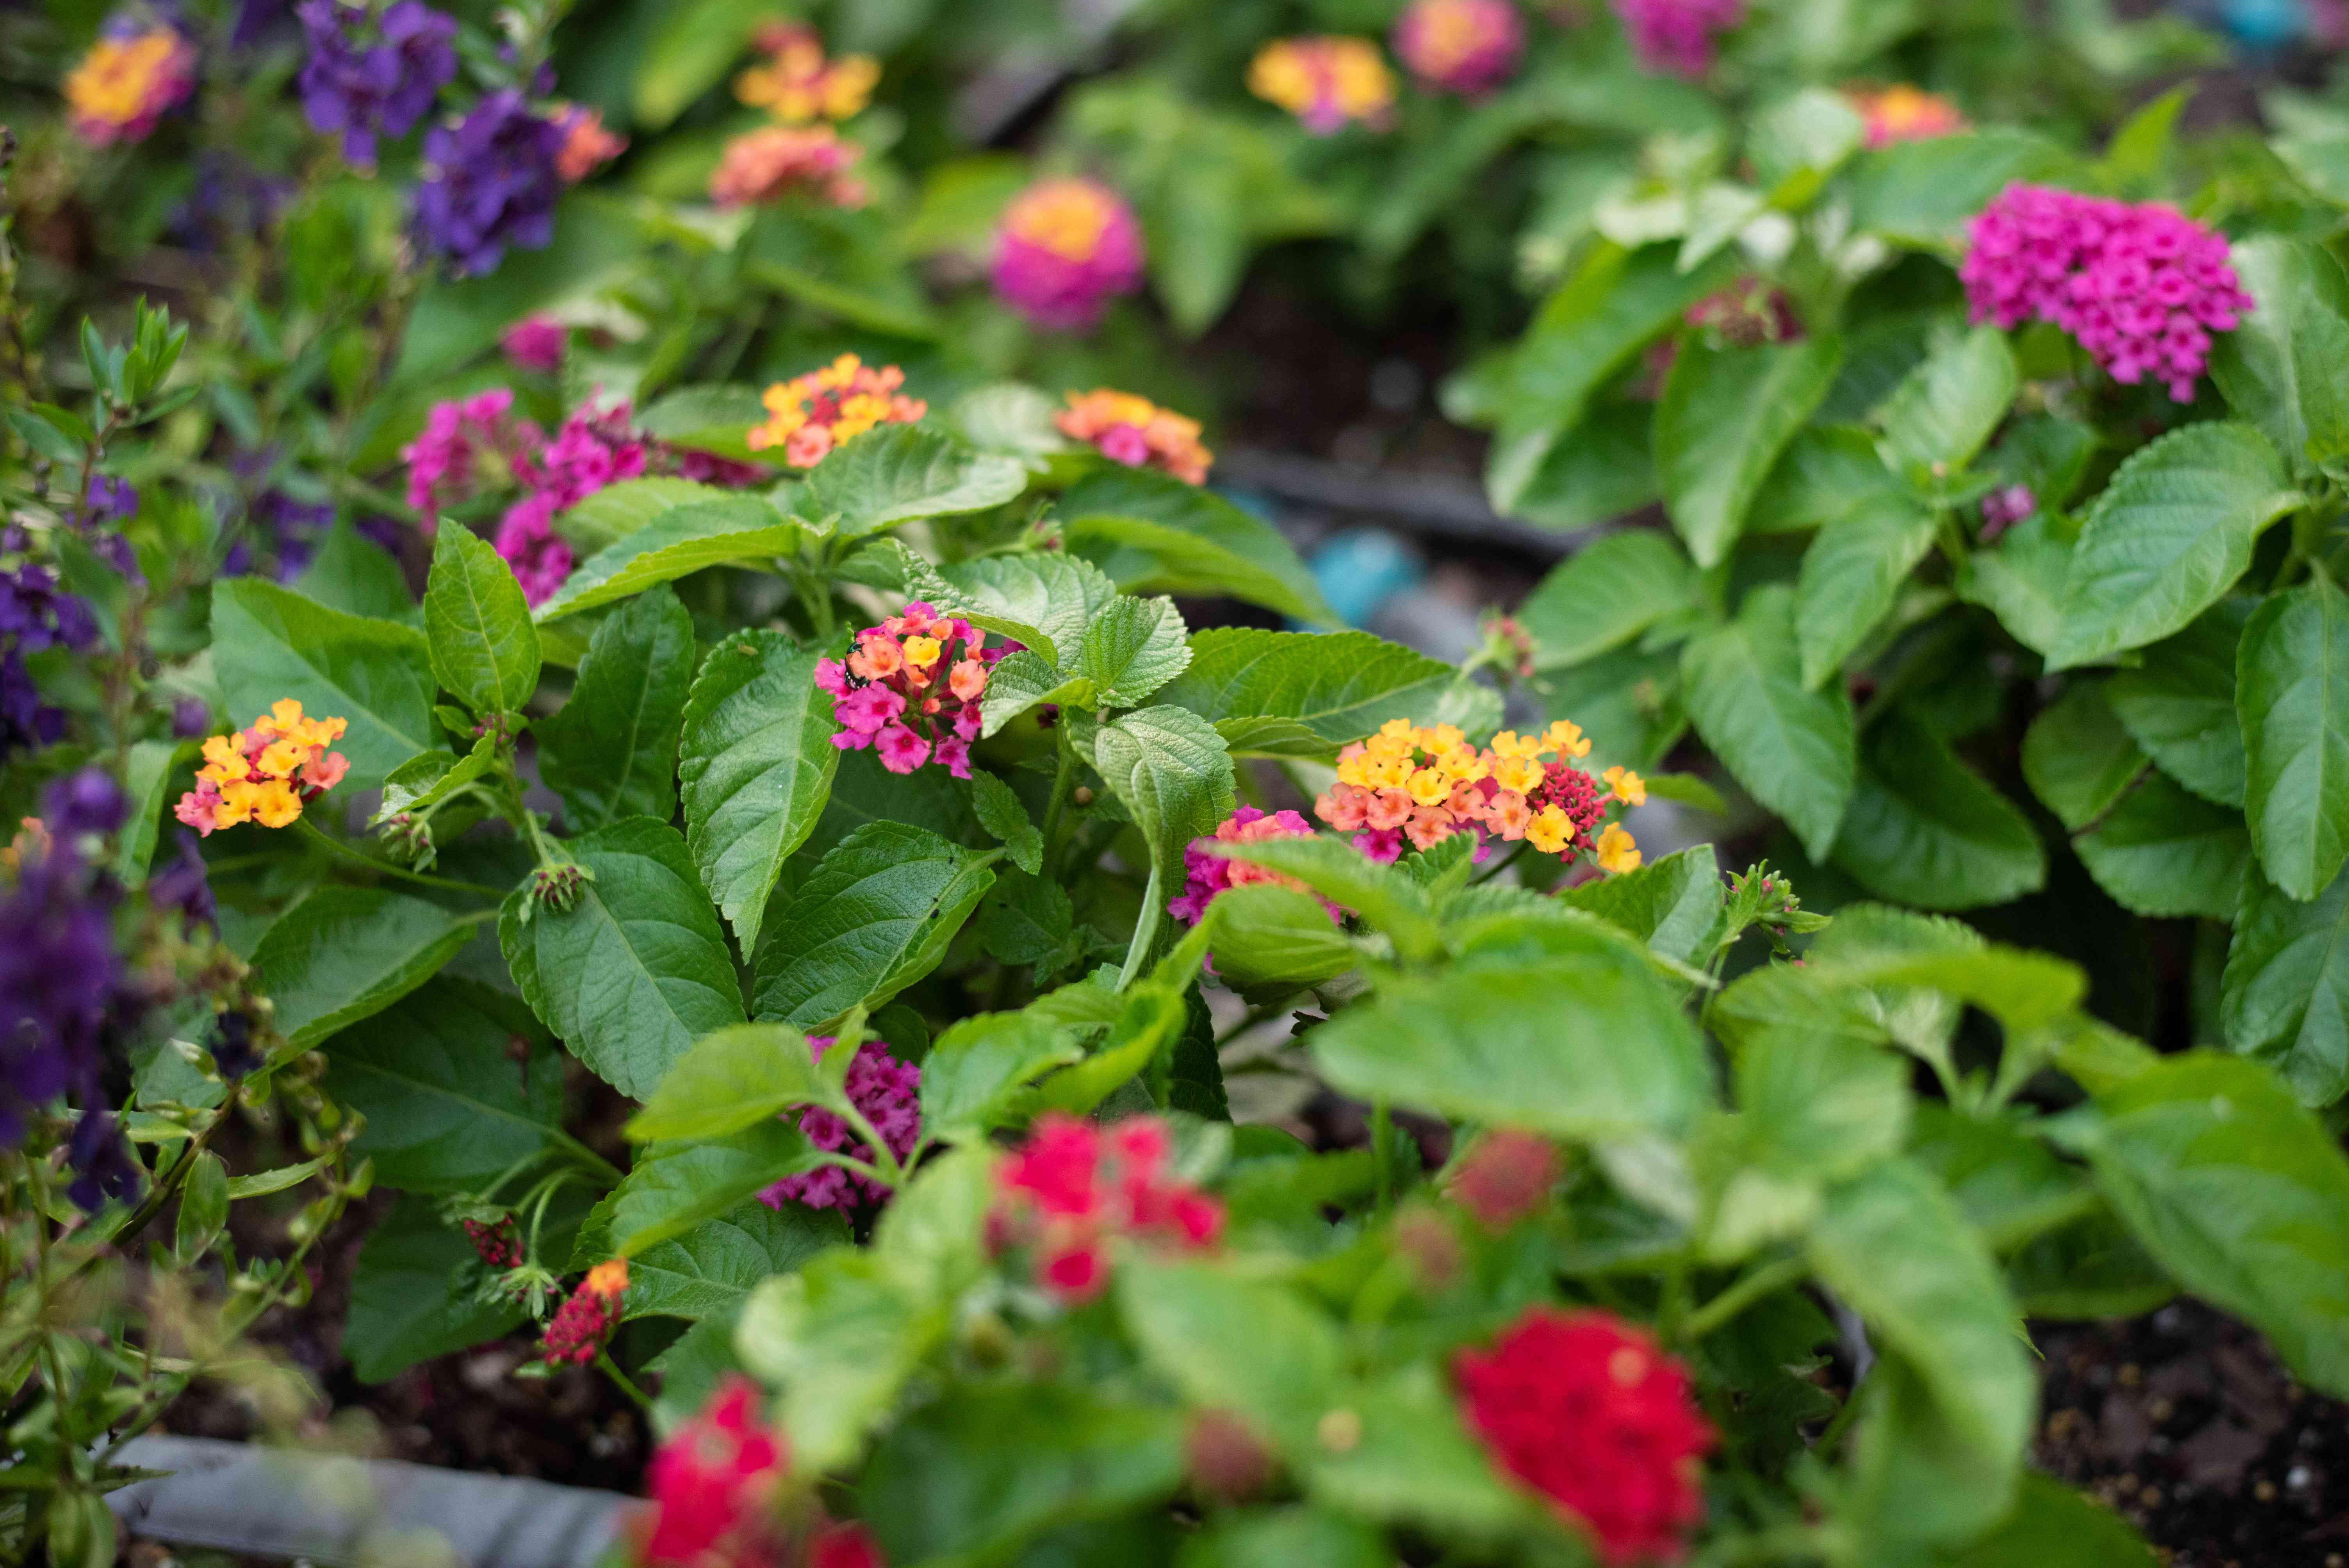 Bloodflowerplant with waxy green leaves and tiny clusters of yellow and pink flowersflower